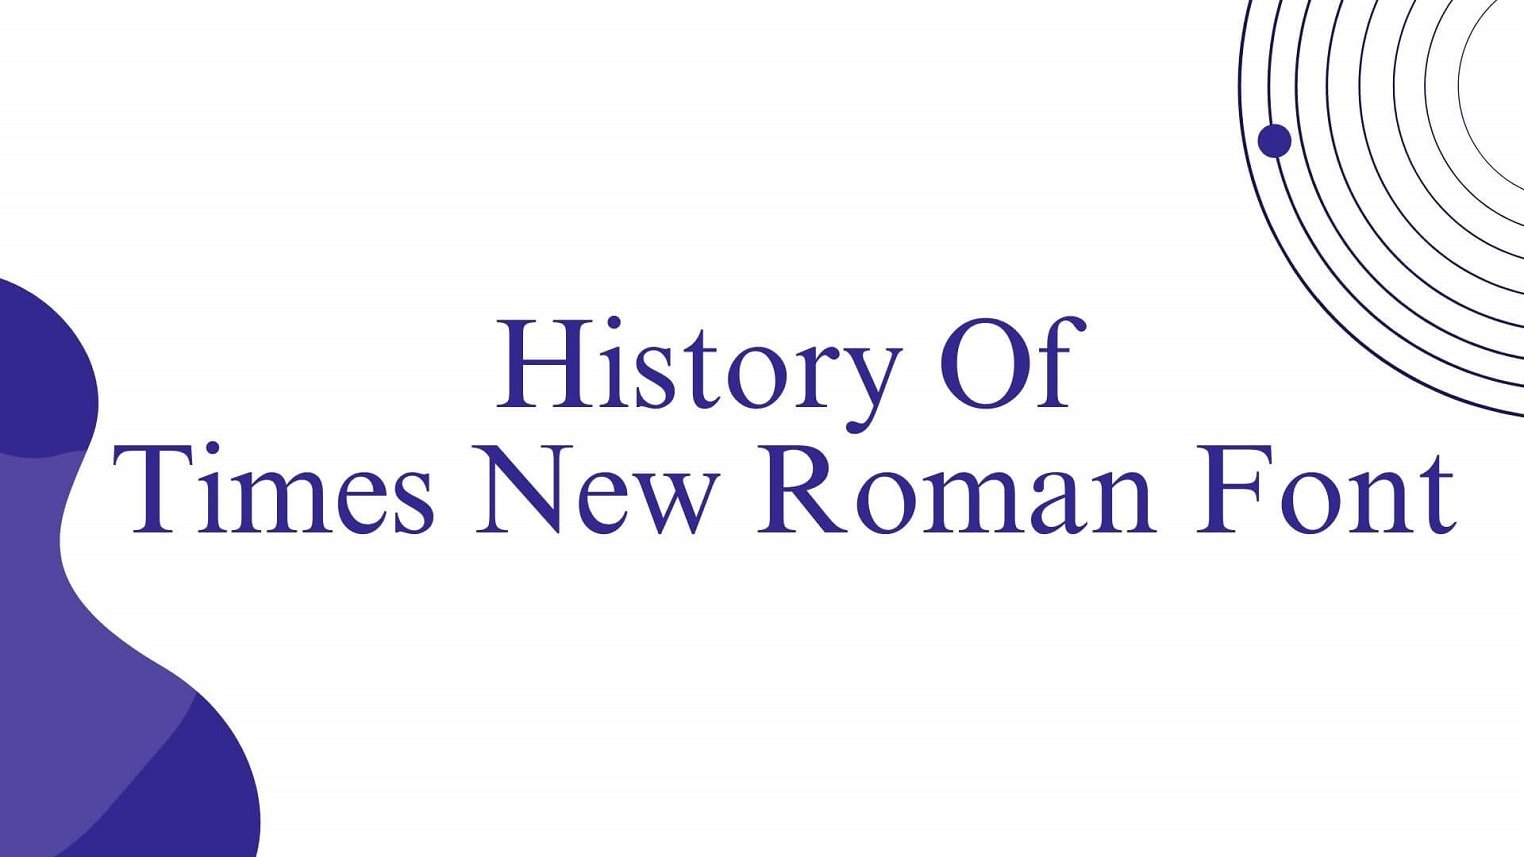 History of Times New Roman Font